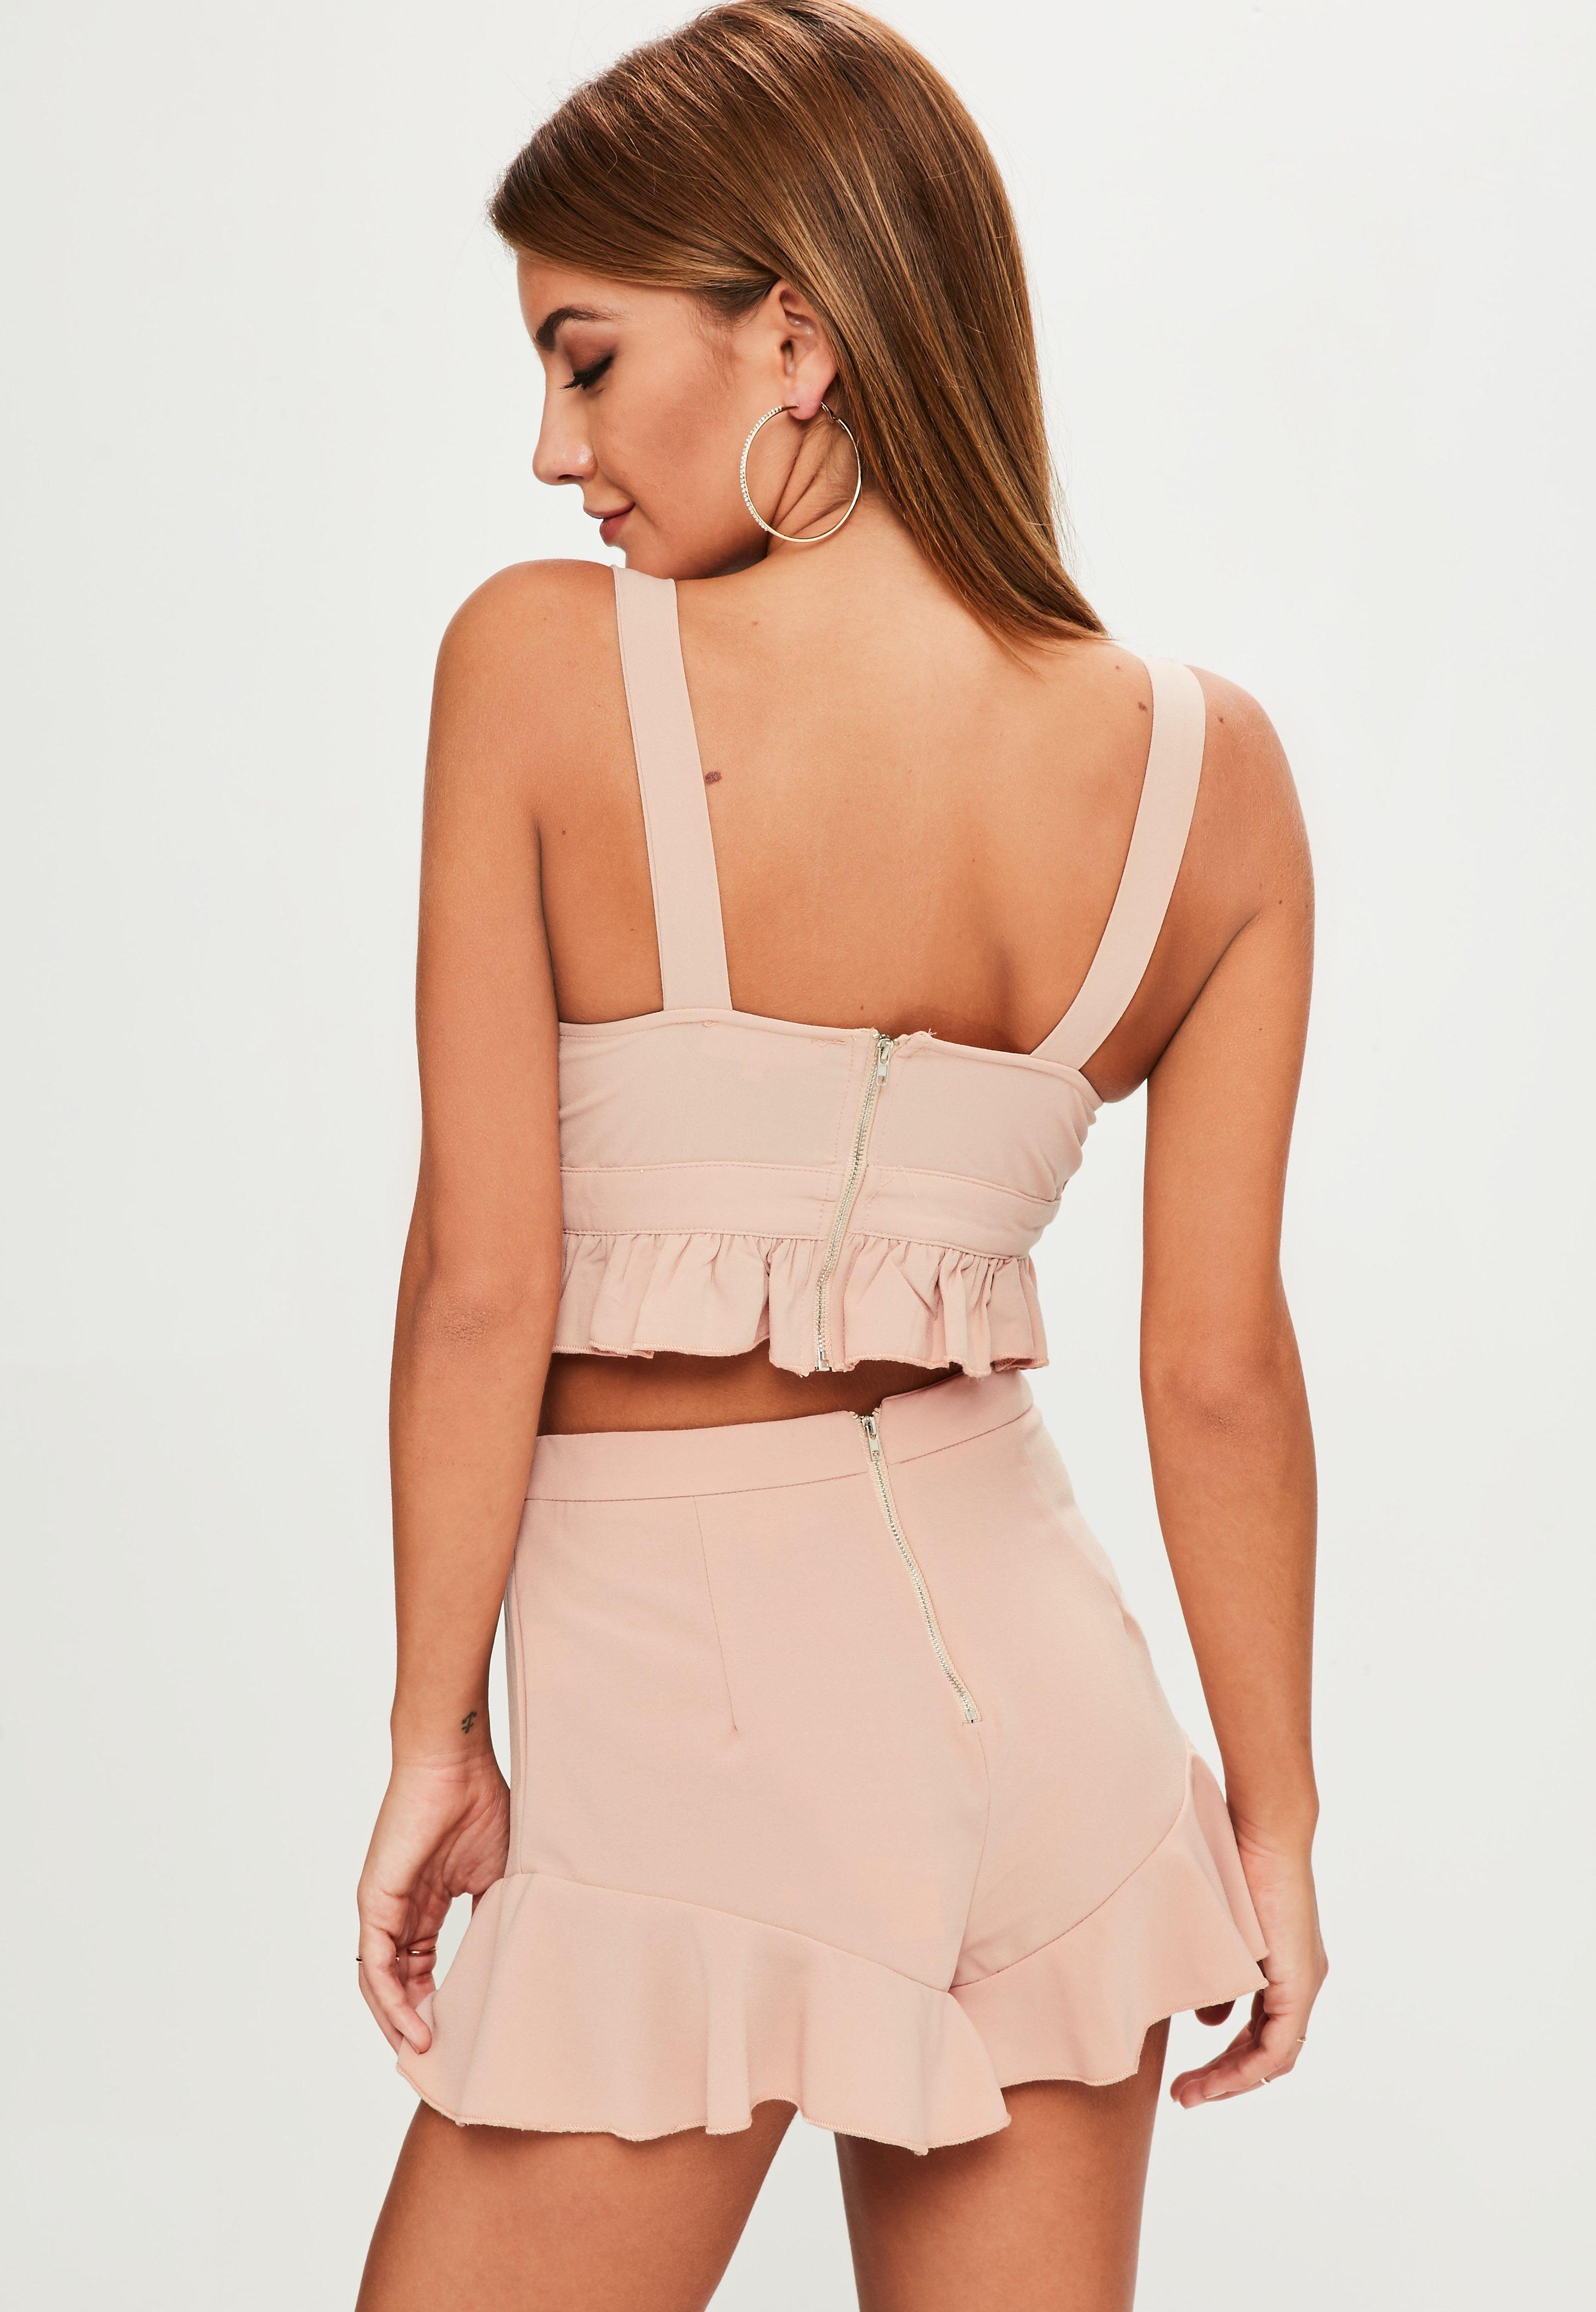 Missguided Striped Shorts CO ORD Set Cheap Sale Release Dates Cheap Buy Authentic Buy Cheap Latest Collections nWxItavz4